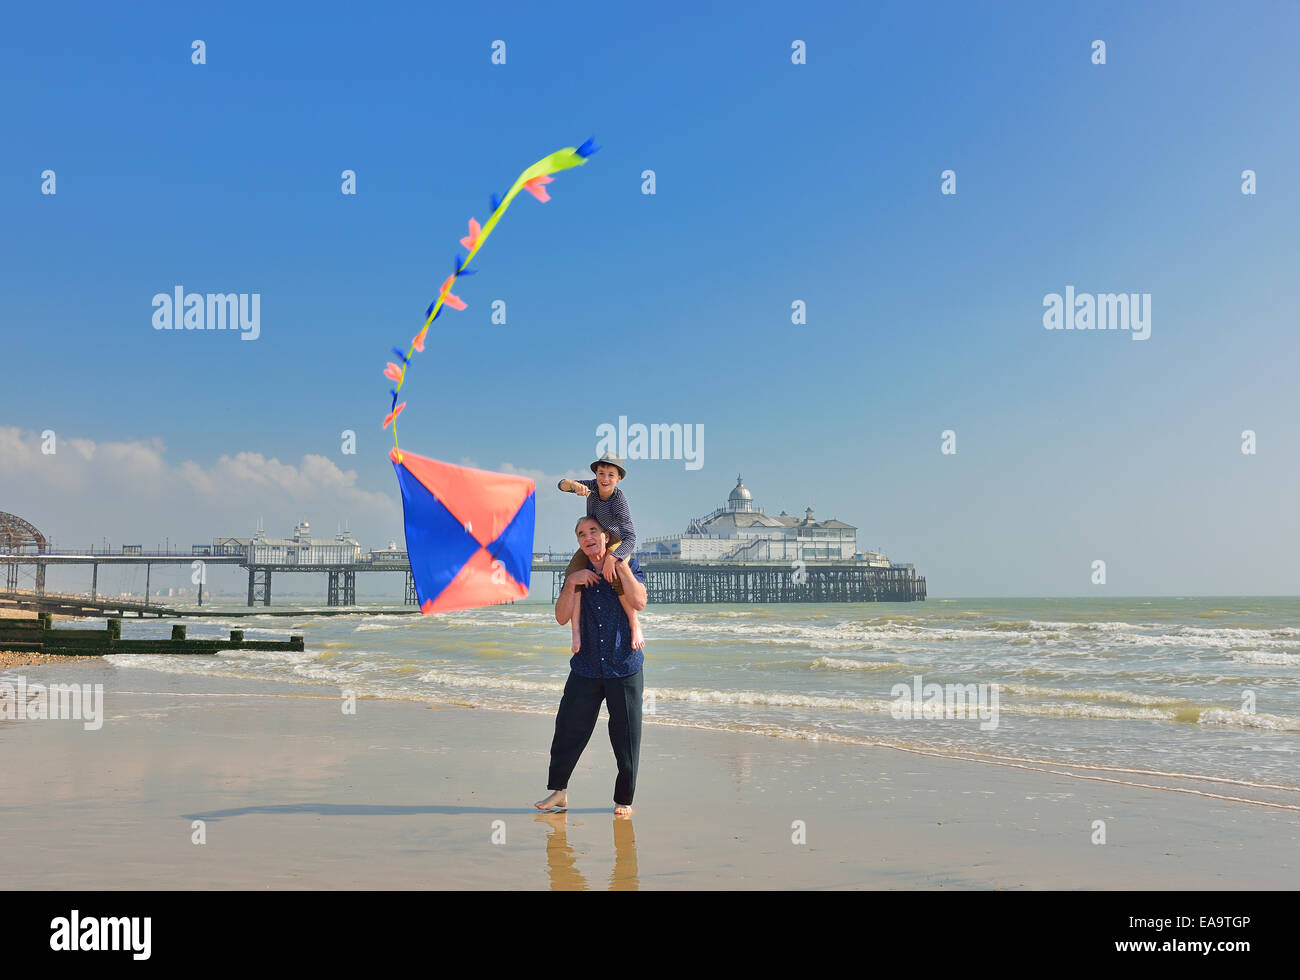 Grandfather with grandson flying a kite on the beach at Eastbourne. East Sussex. UK - Stock Image